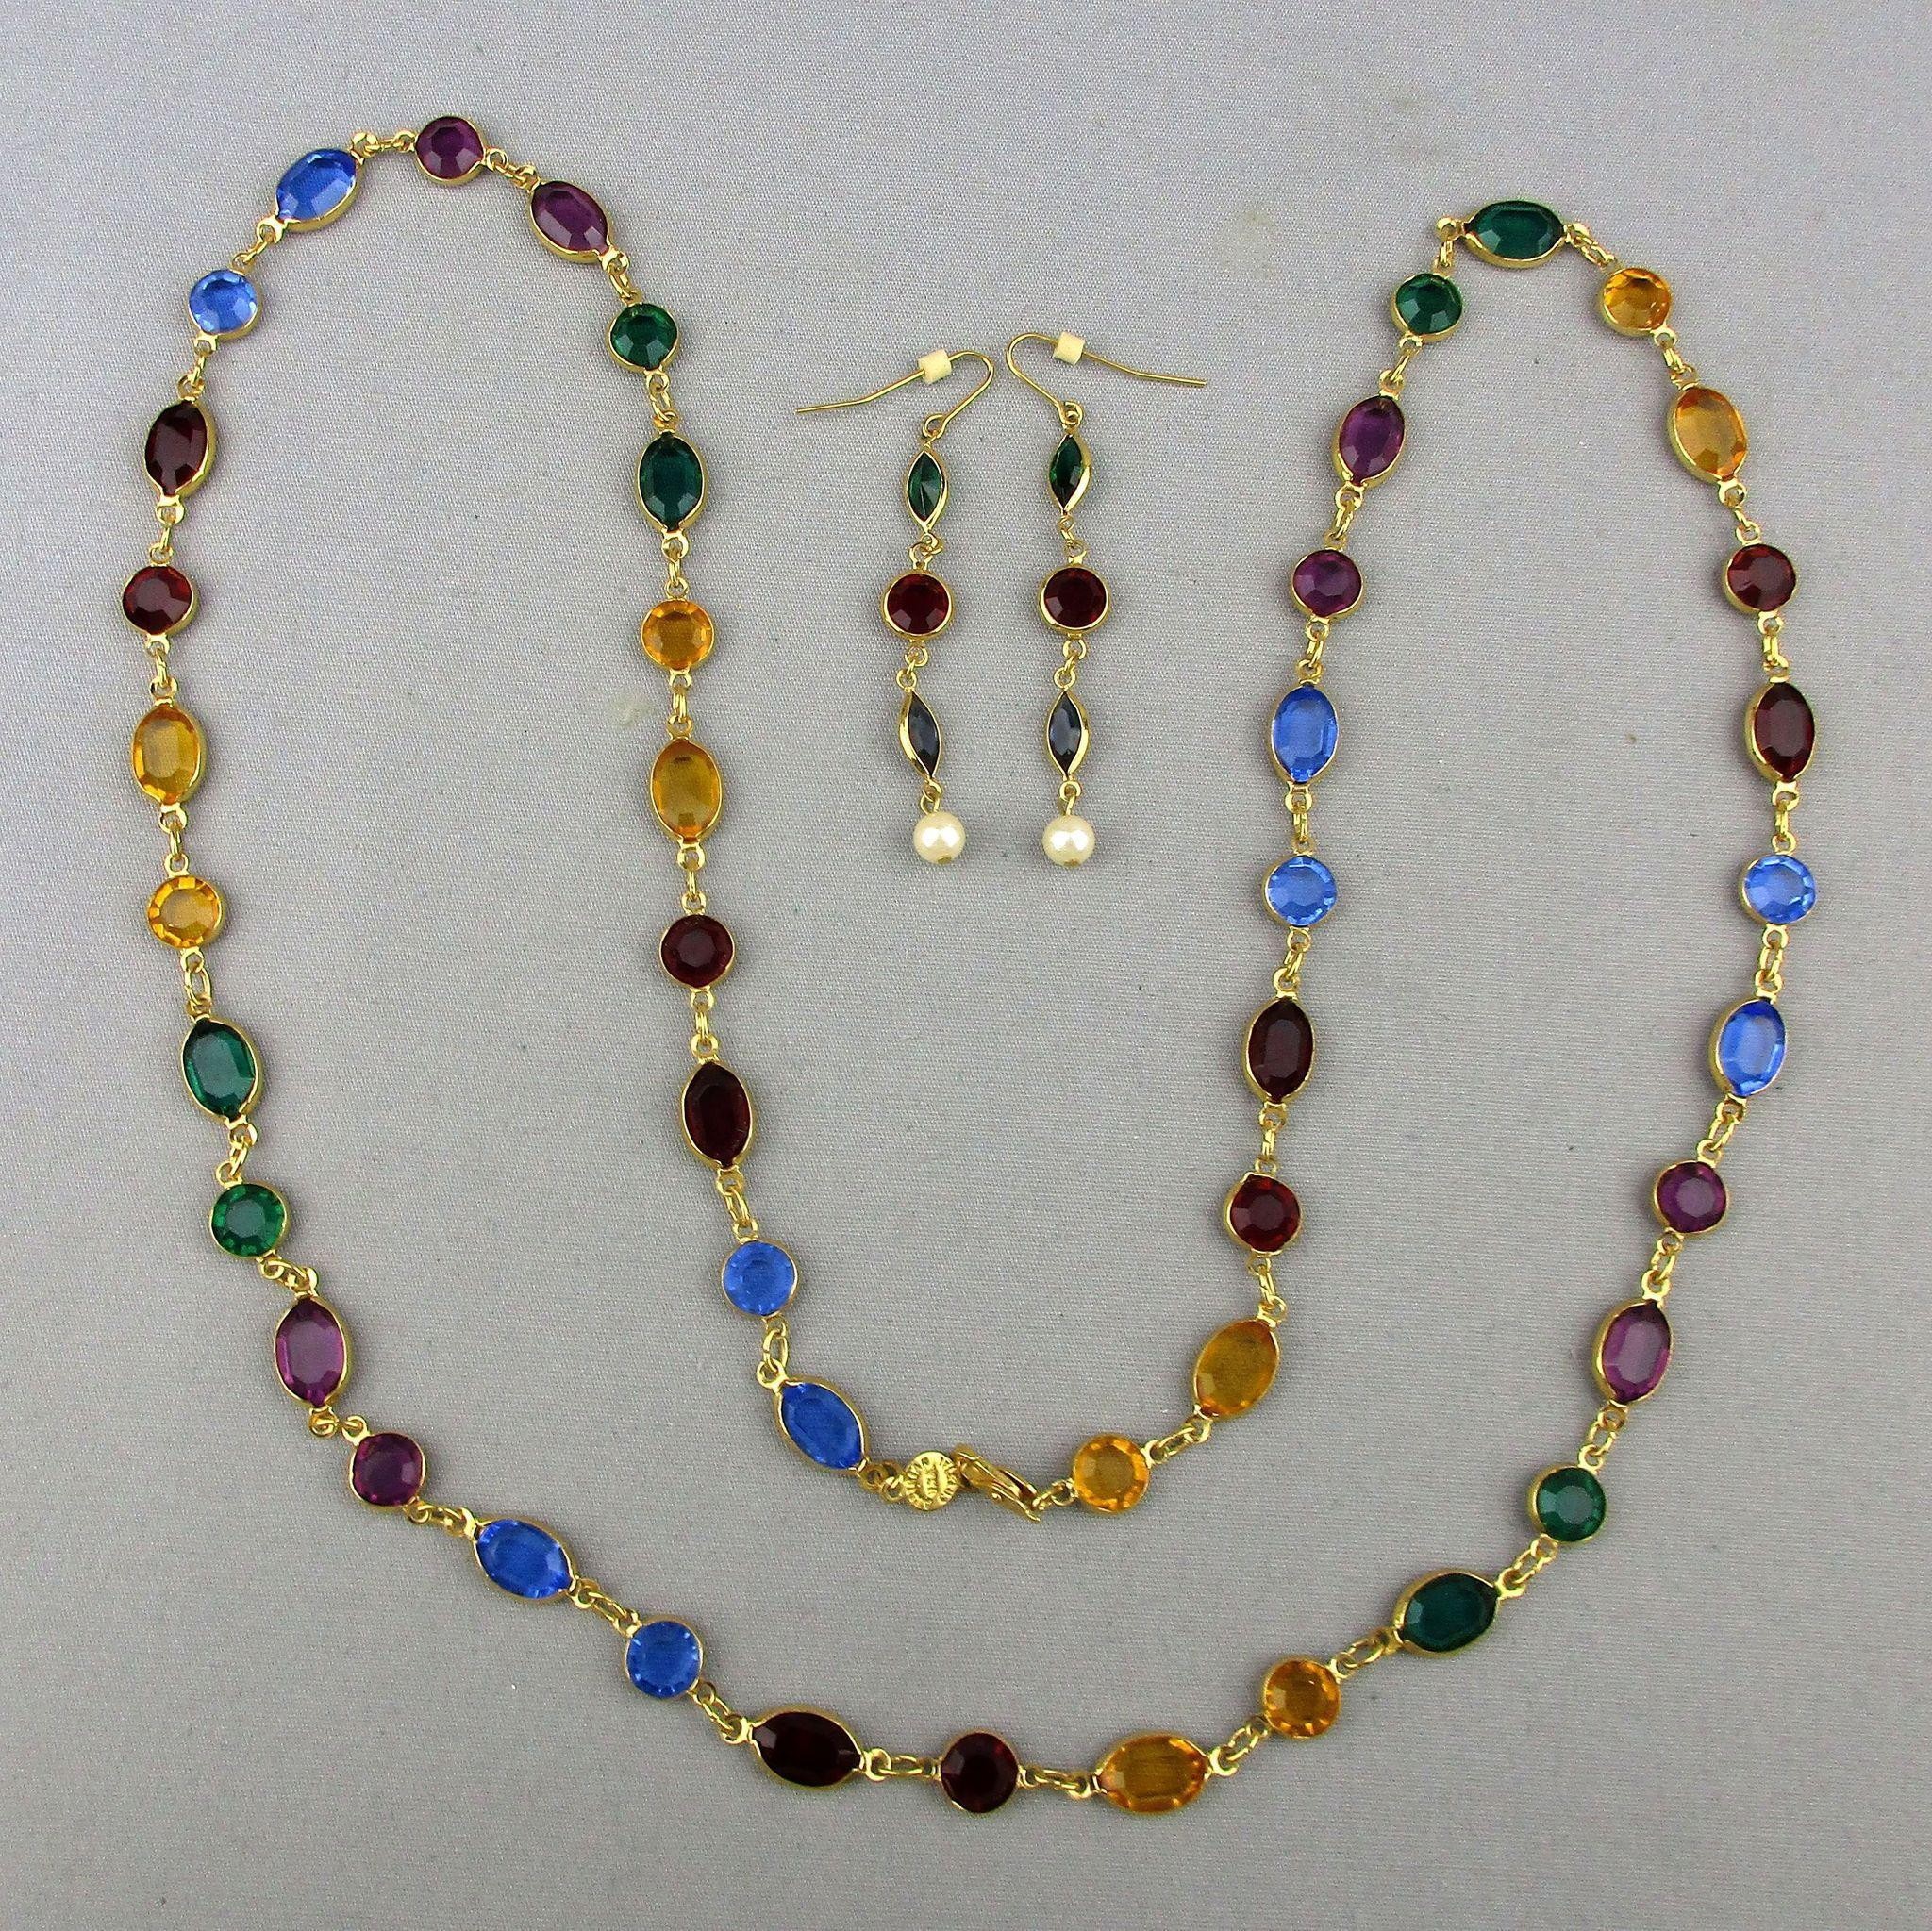 Long Austrian Crystal Chain Necklace & Earrings Set - Primary Colors